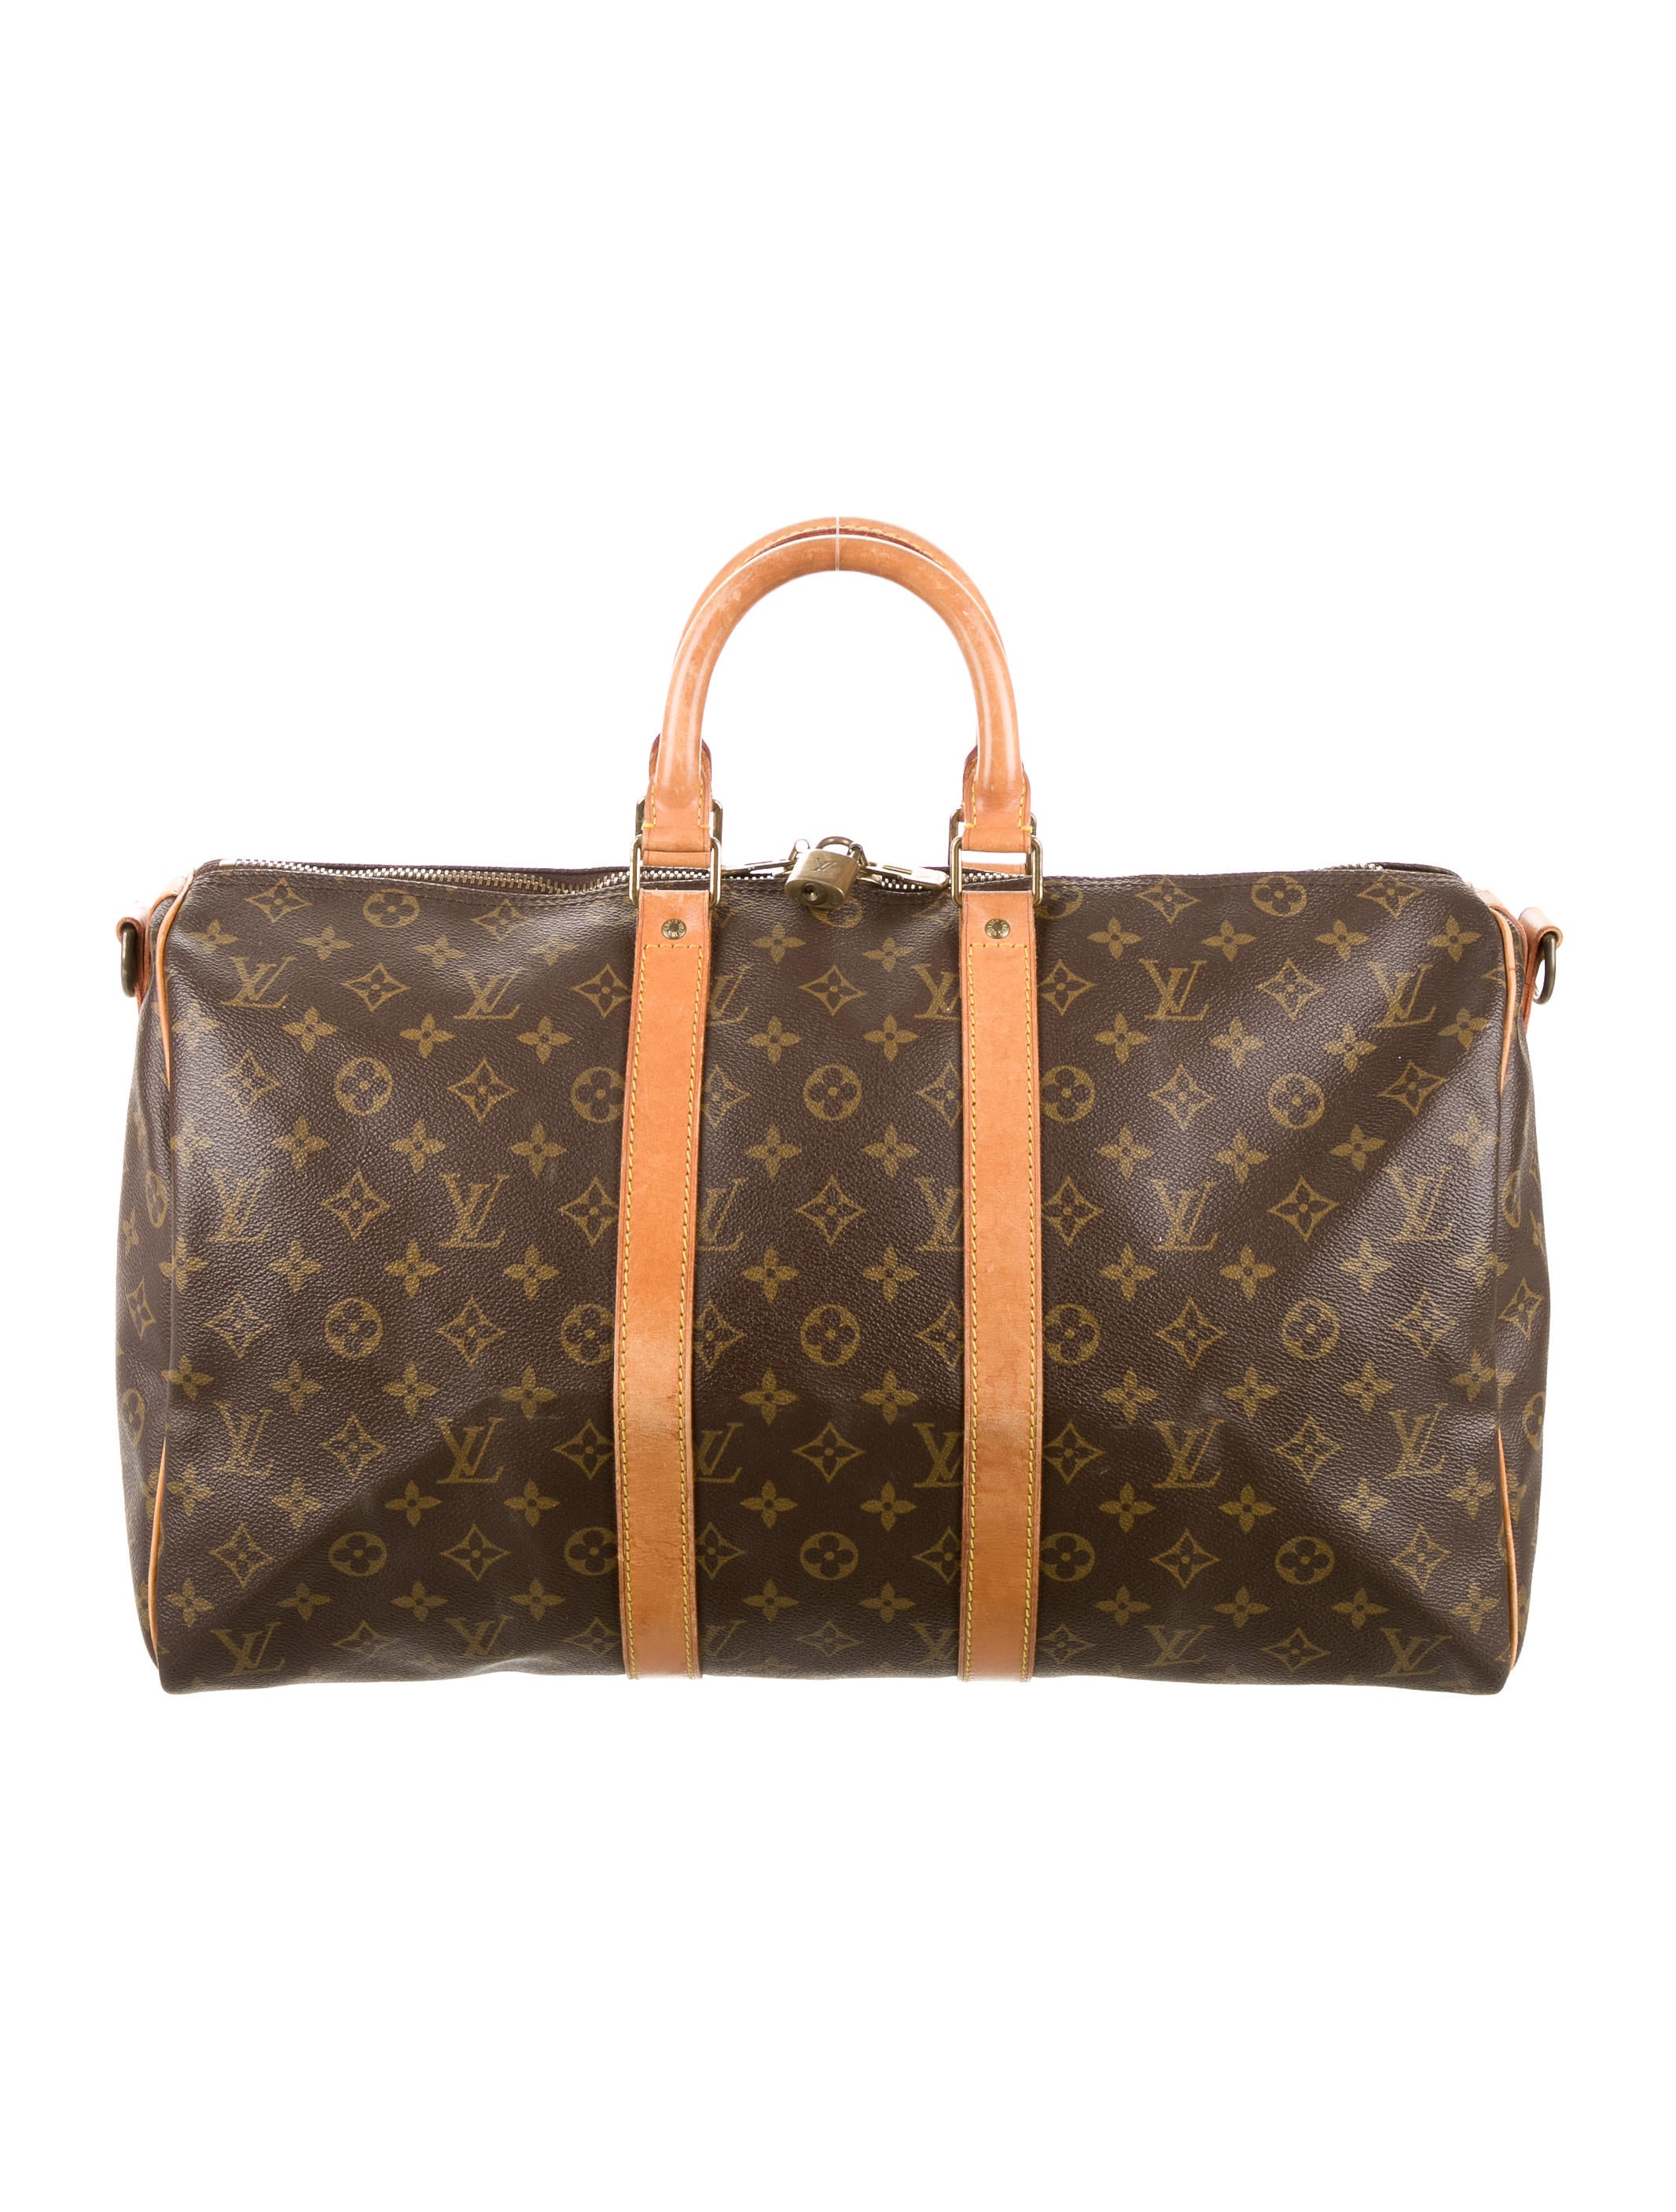 louis vuitton monogram keepall bandouli re 45 handbags lou111046 the realreal. Black Bedroom Furniture Sets. Home Design Ideas